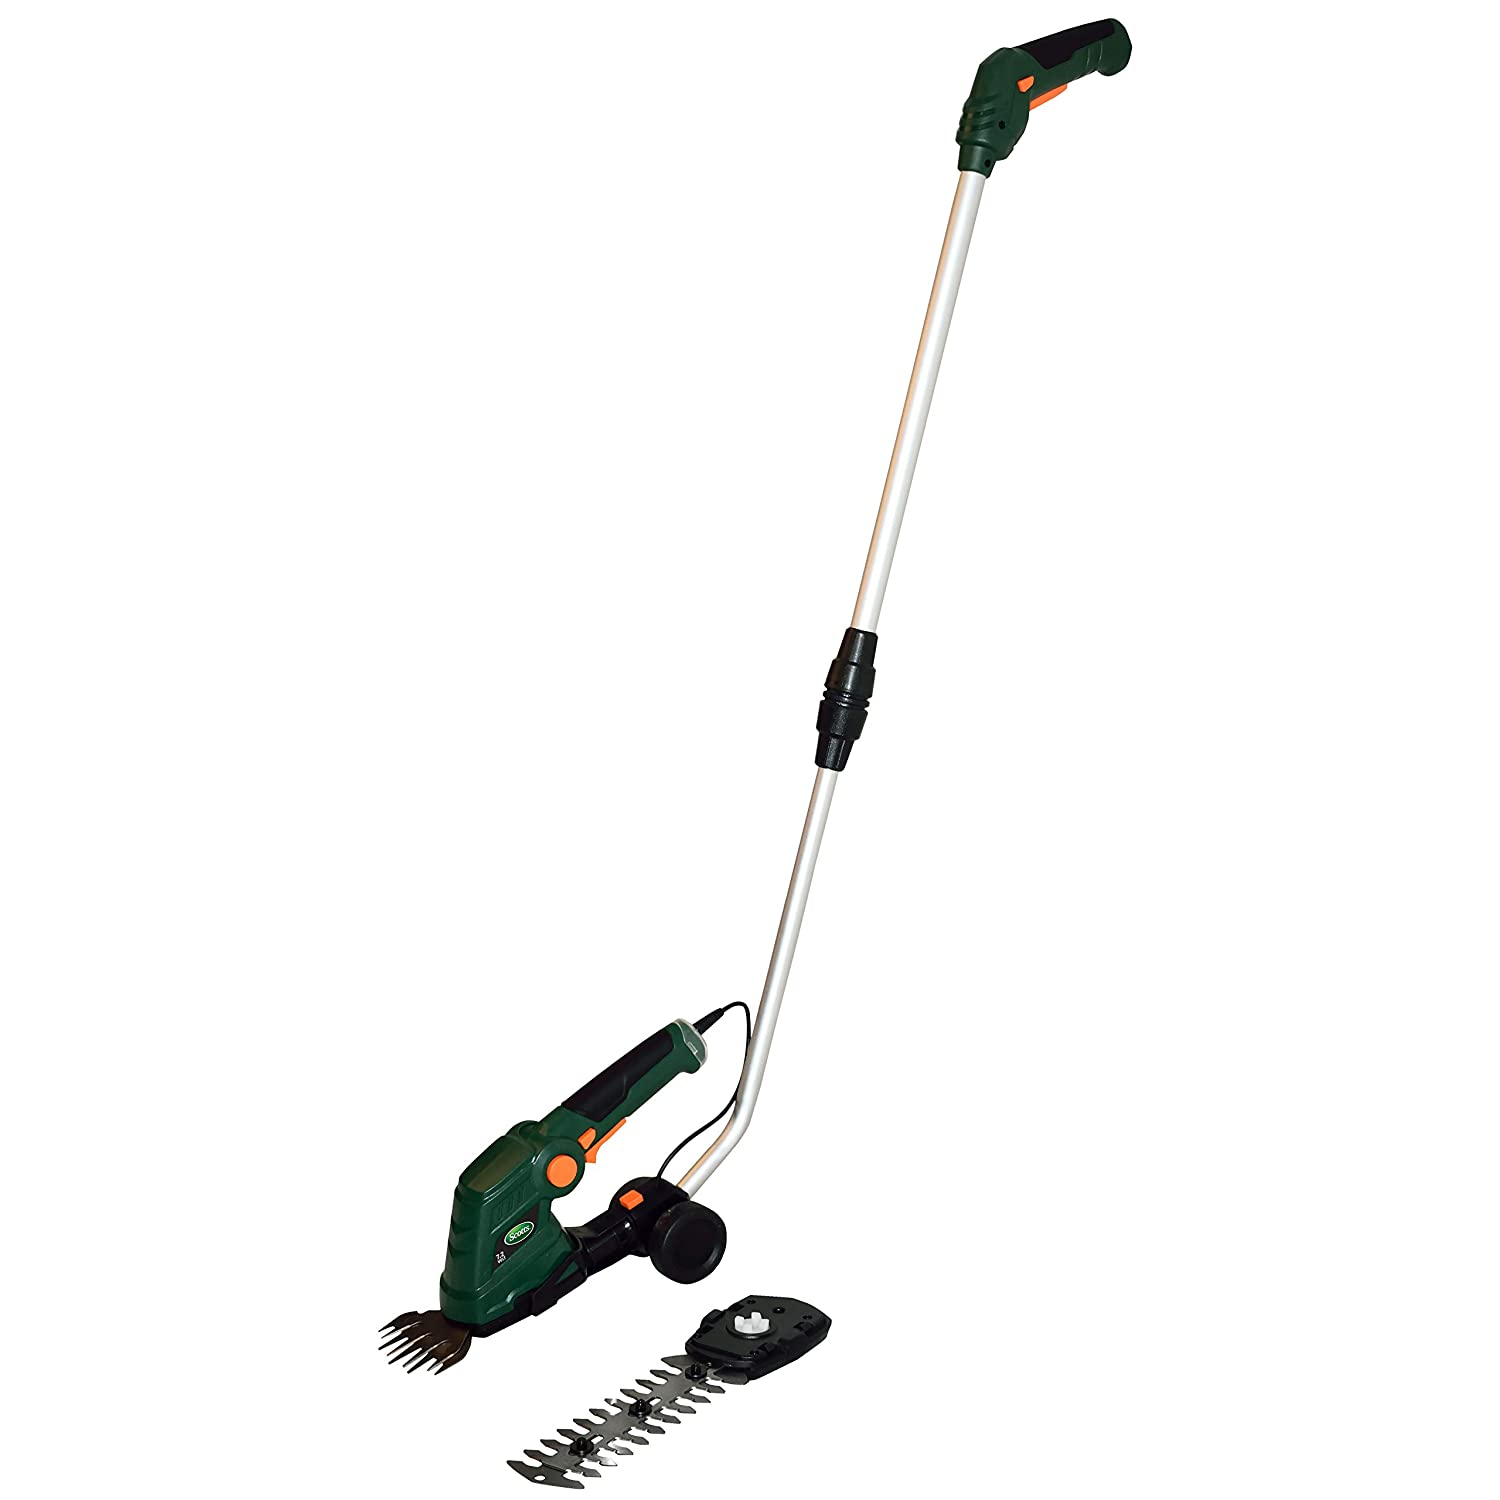 Scotts Outdoor Power Tools LSS10272PS 7.5-Volt Lithium-Ion Cordless Grass Shear/Shrub Trimmer with Wheeled Extension Handle, Green